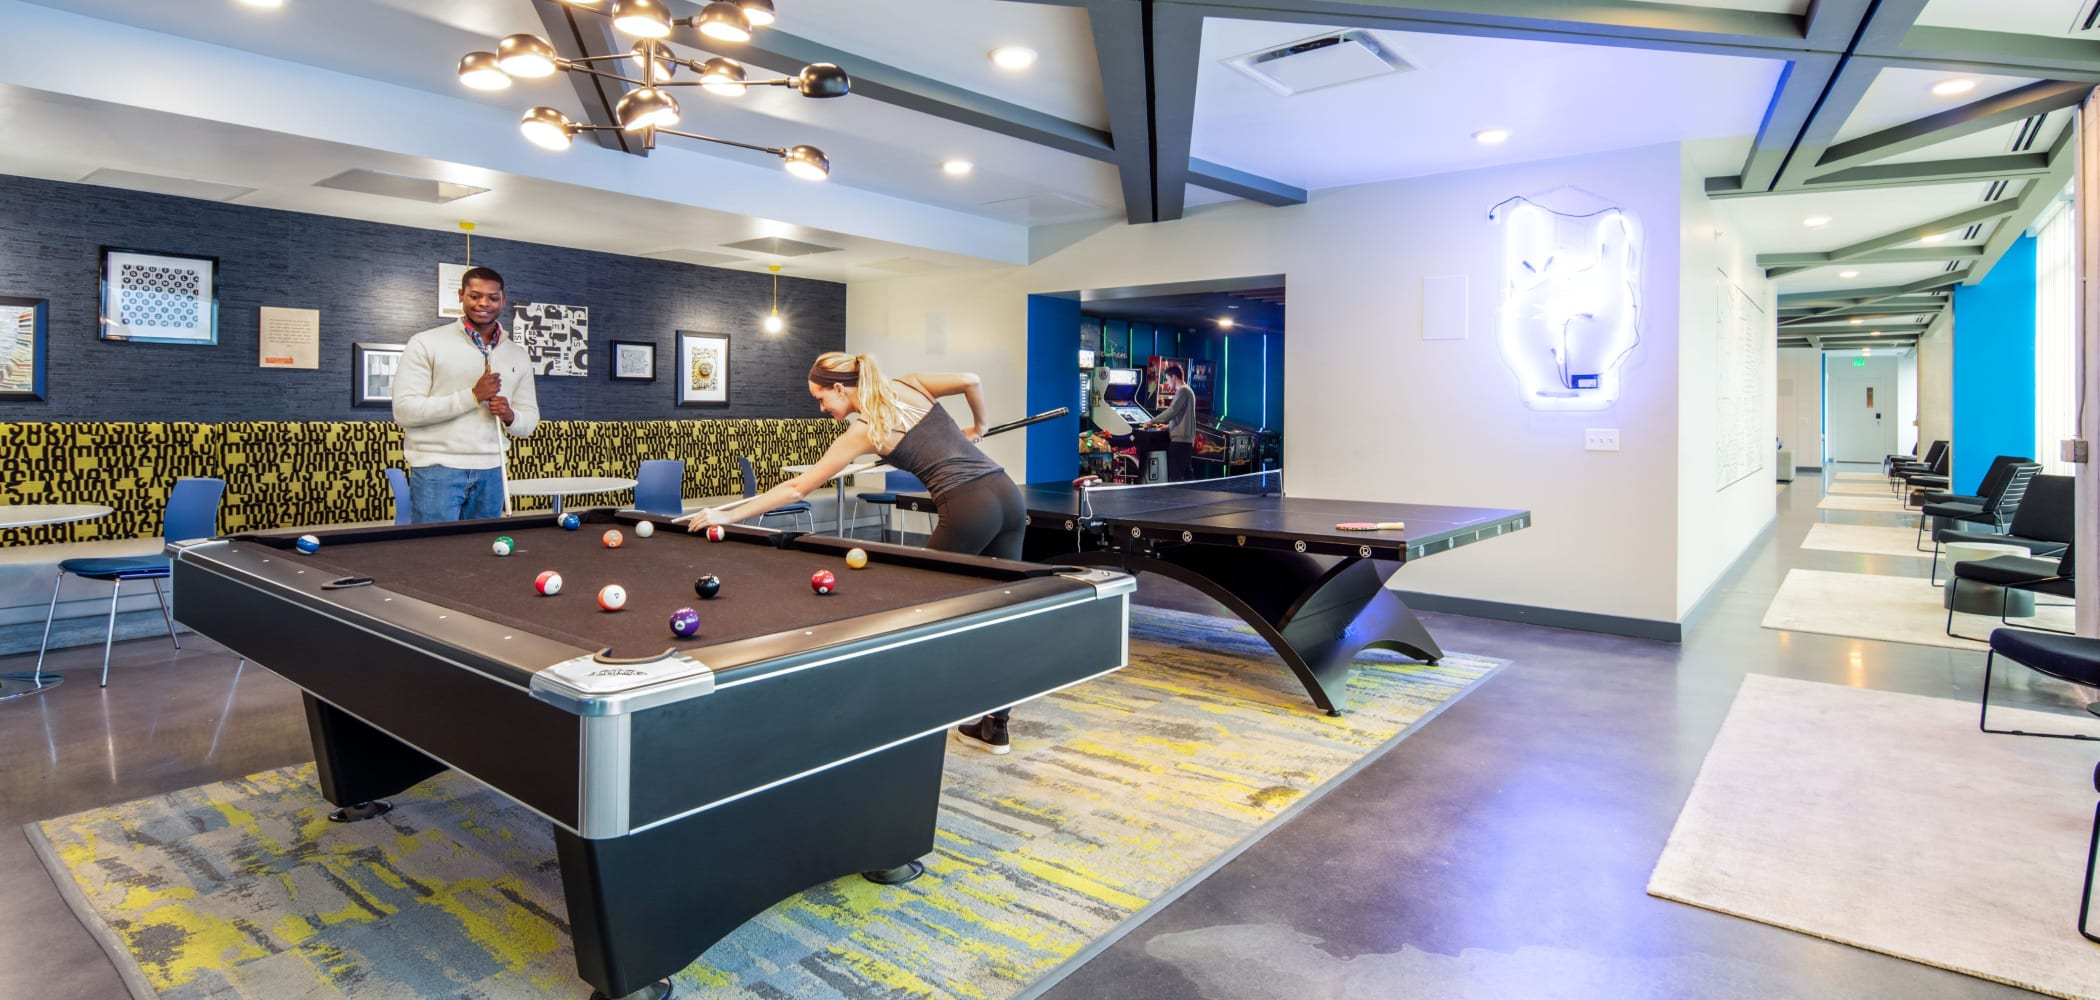 Game room with a billiards table at RISE at Riverfront Crossings in Iowa City, Iowa